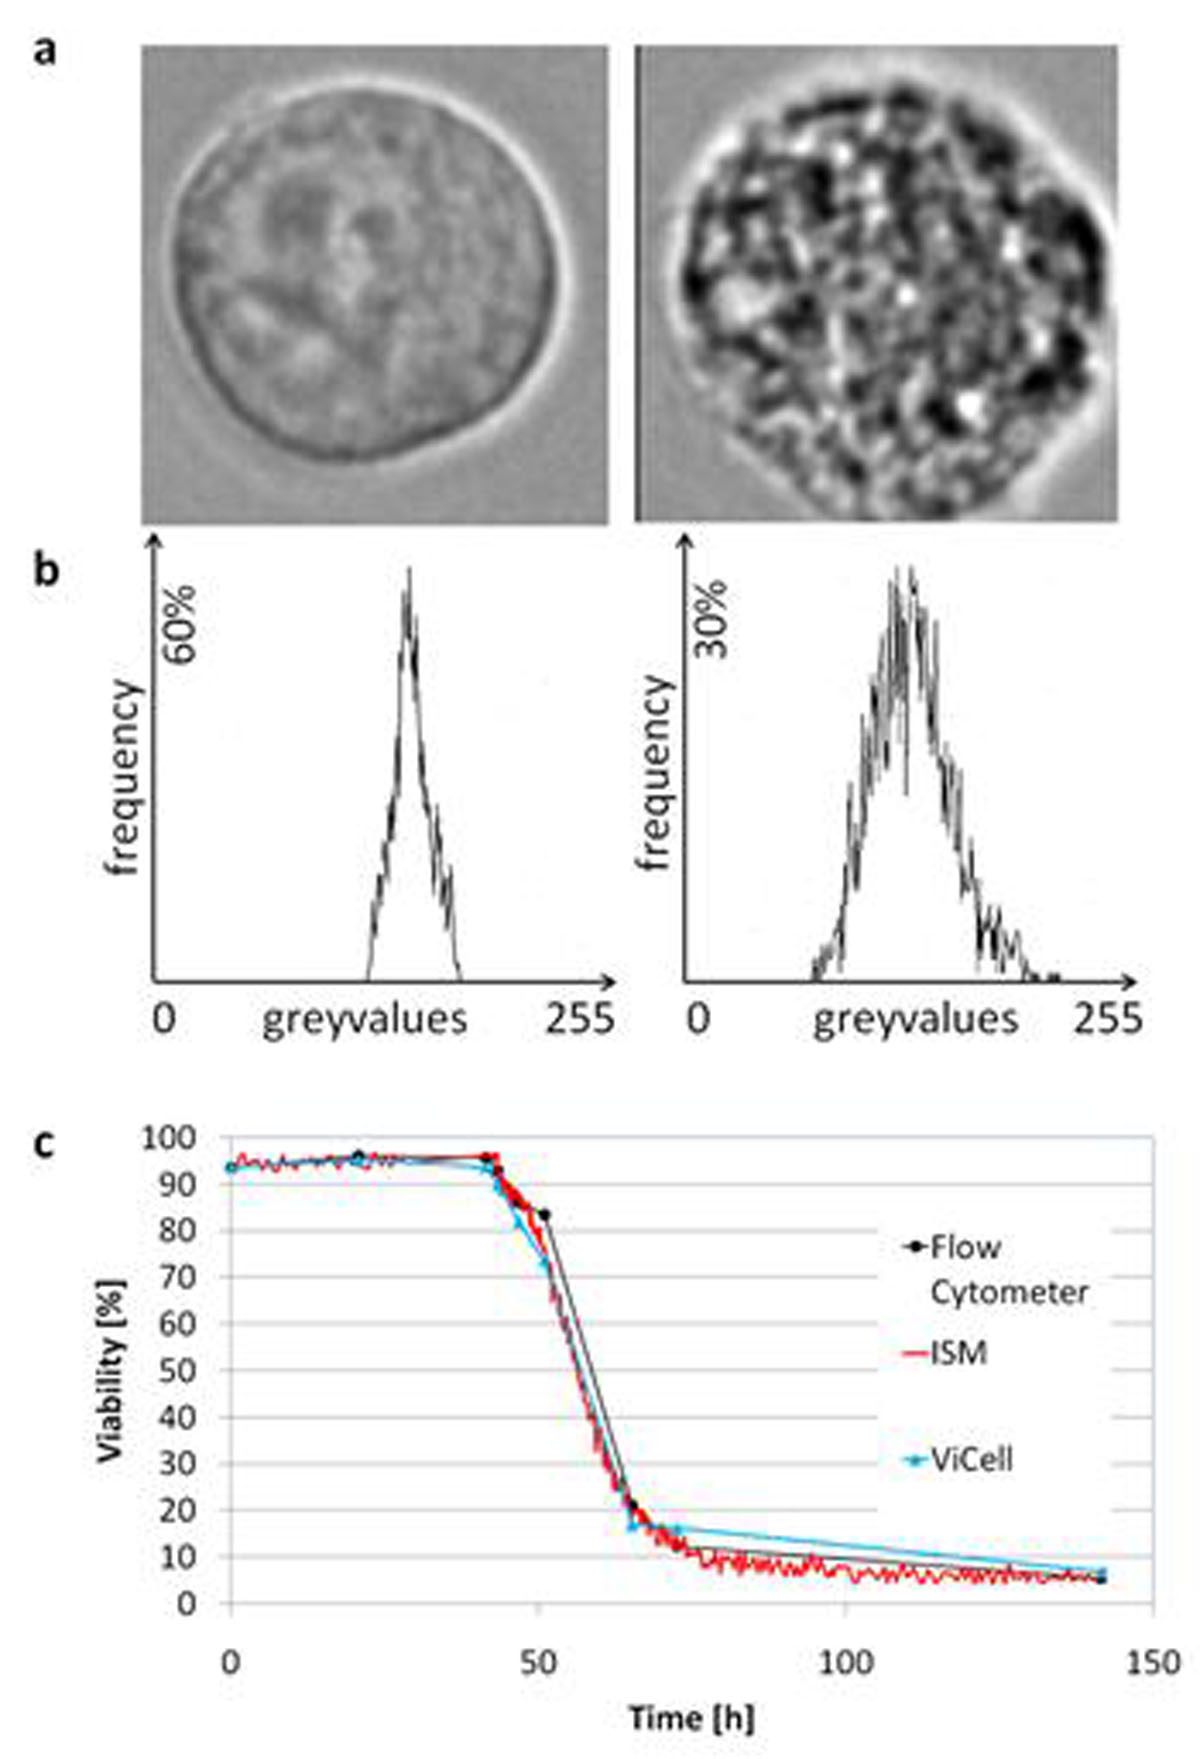 https://static-content.springer.com/image/art%3A10.1186%2F1753-6561-5-S8-P77/MediaObjects/12919_2011_Article_995_Fig1_HTML.jpg